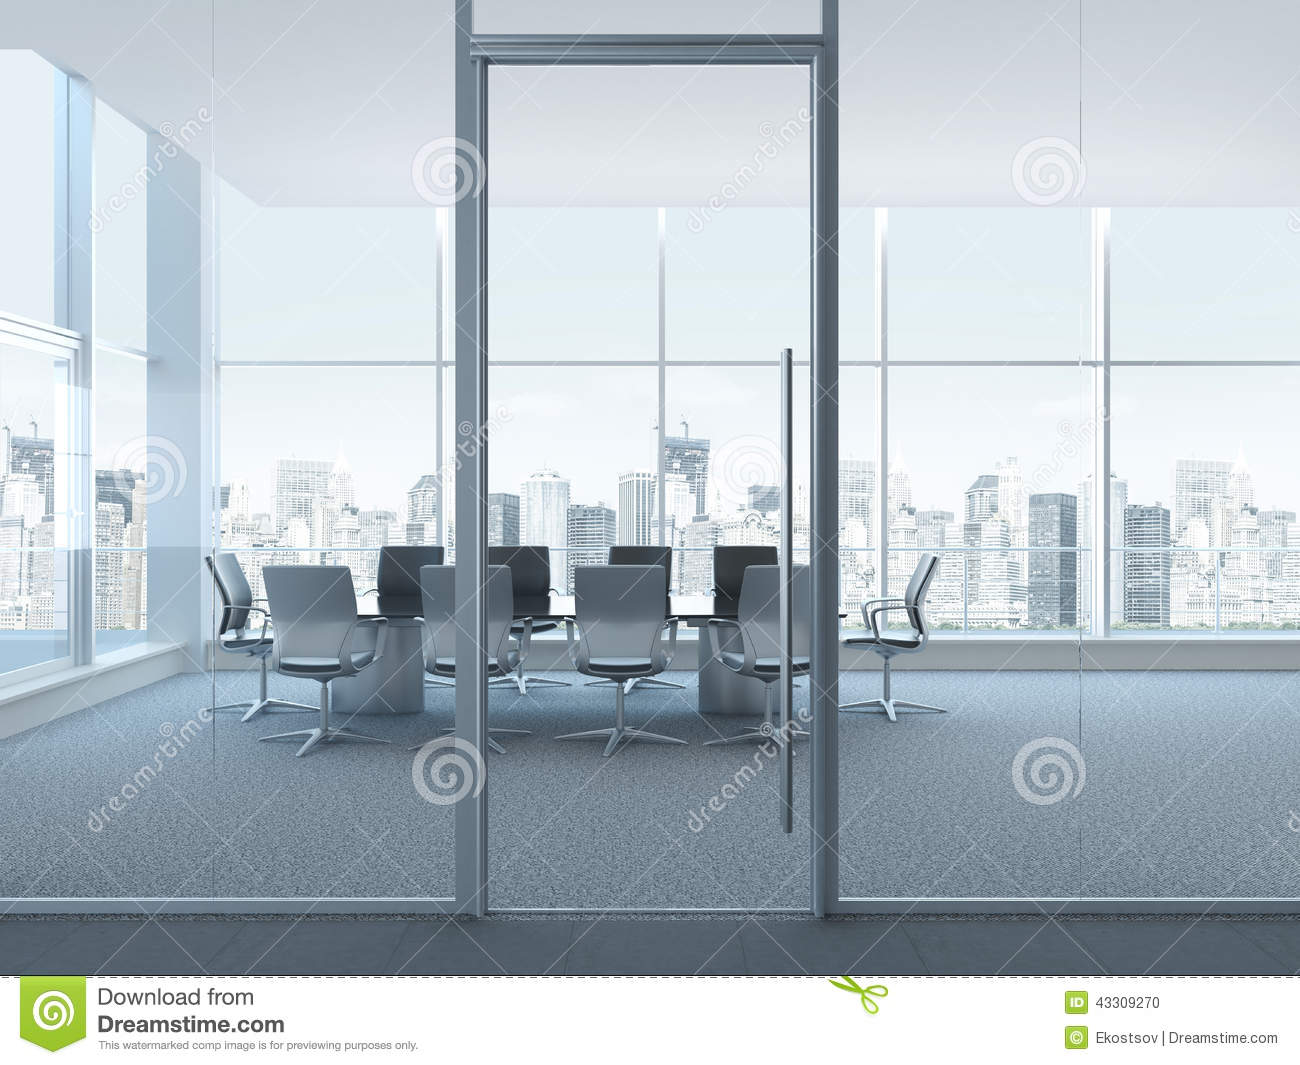 Strange Office Space Interior Stock Photo Image 43309270 Largest Home Design Picture Inspirations Pitcheantrous